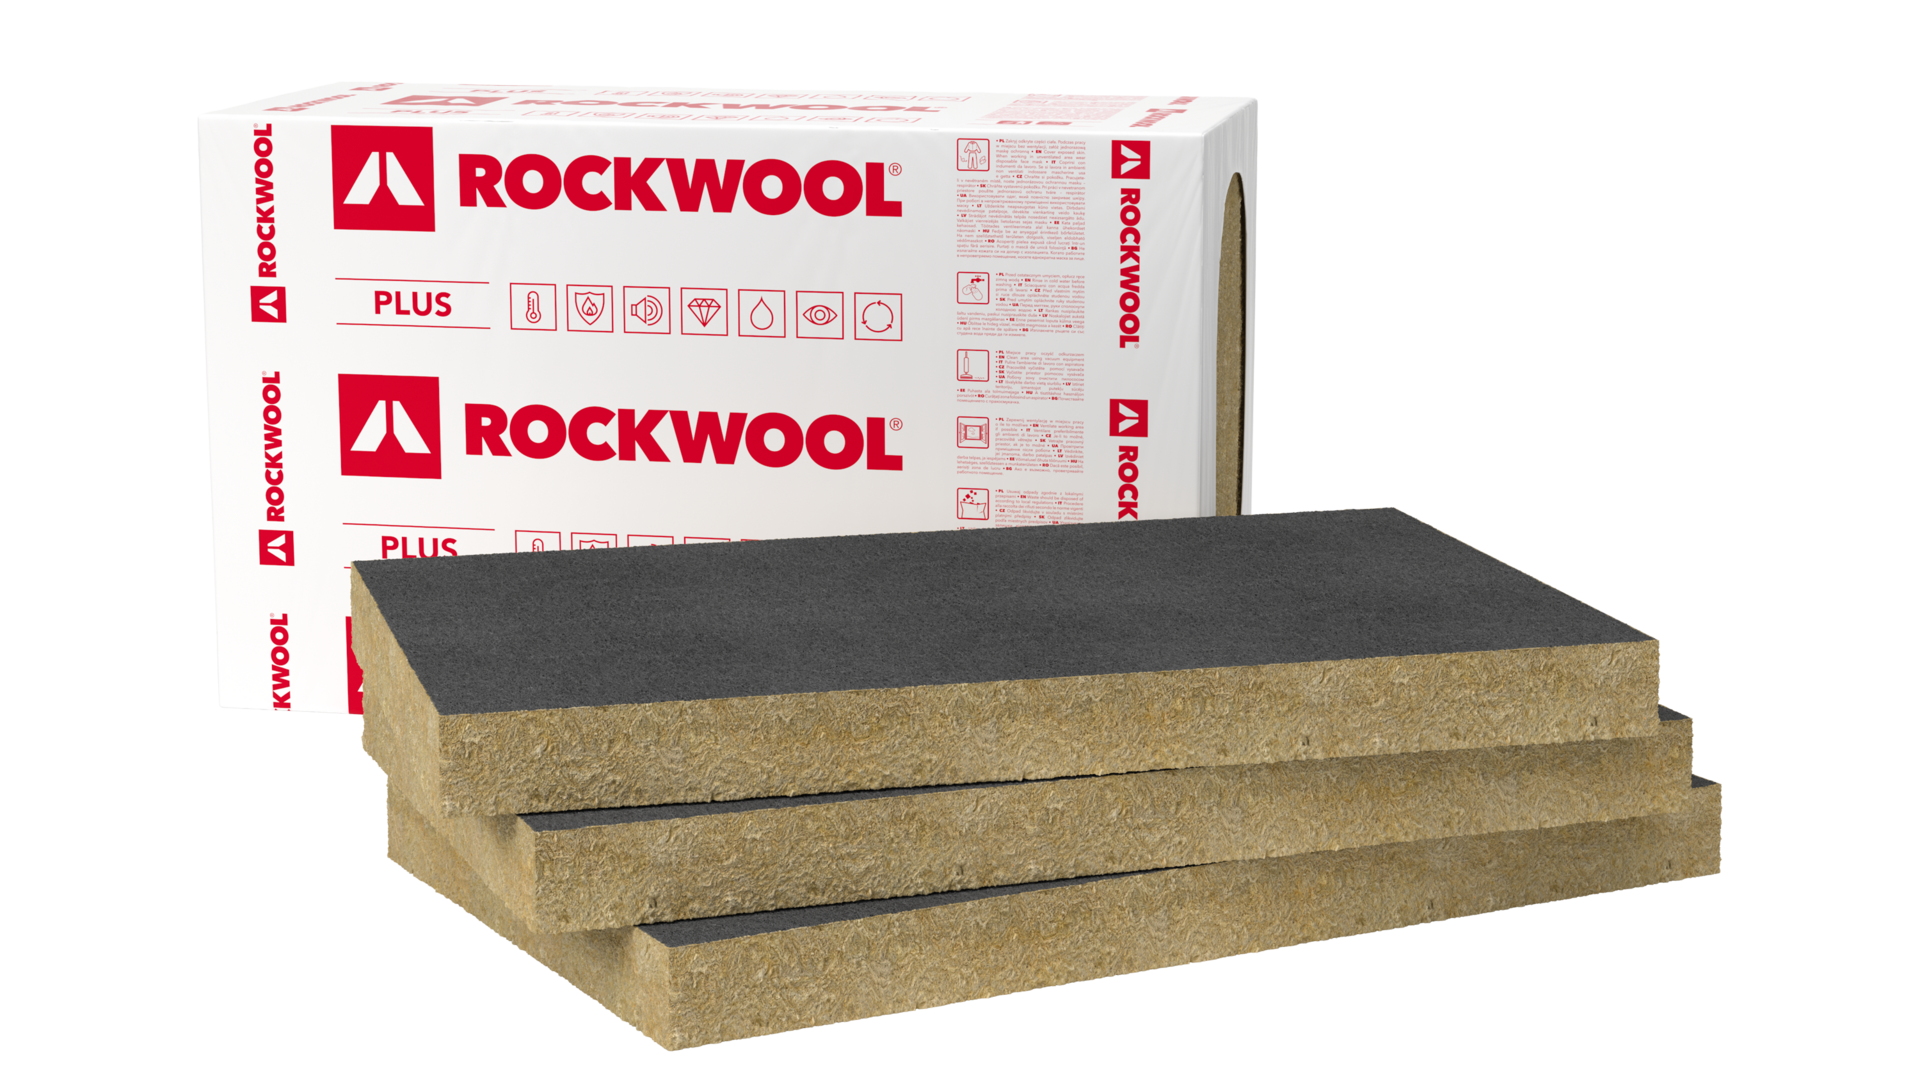 package, slabs, ewi, facade, products, external wall insulation, ventilated facade, ventirock f plus